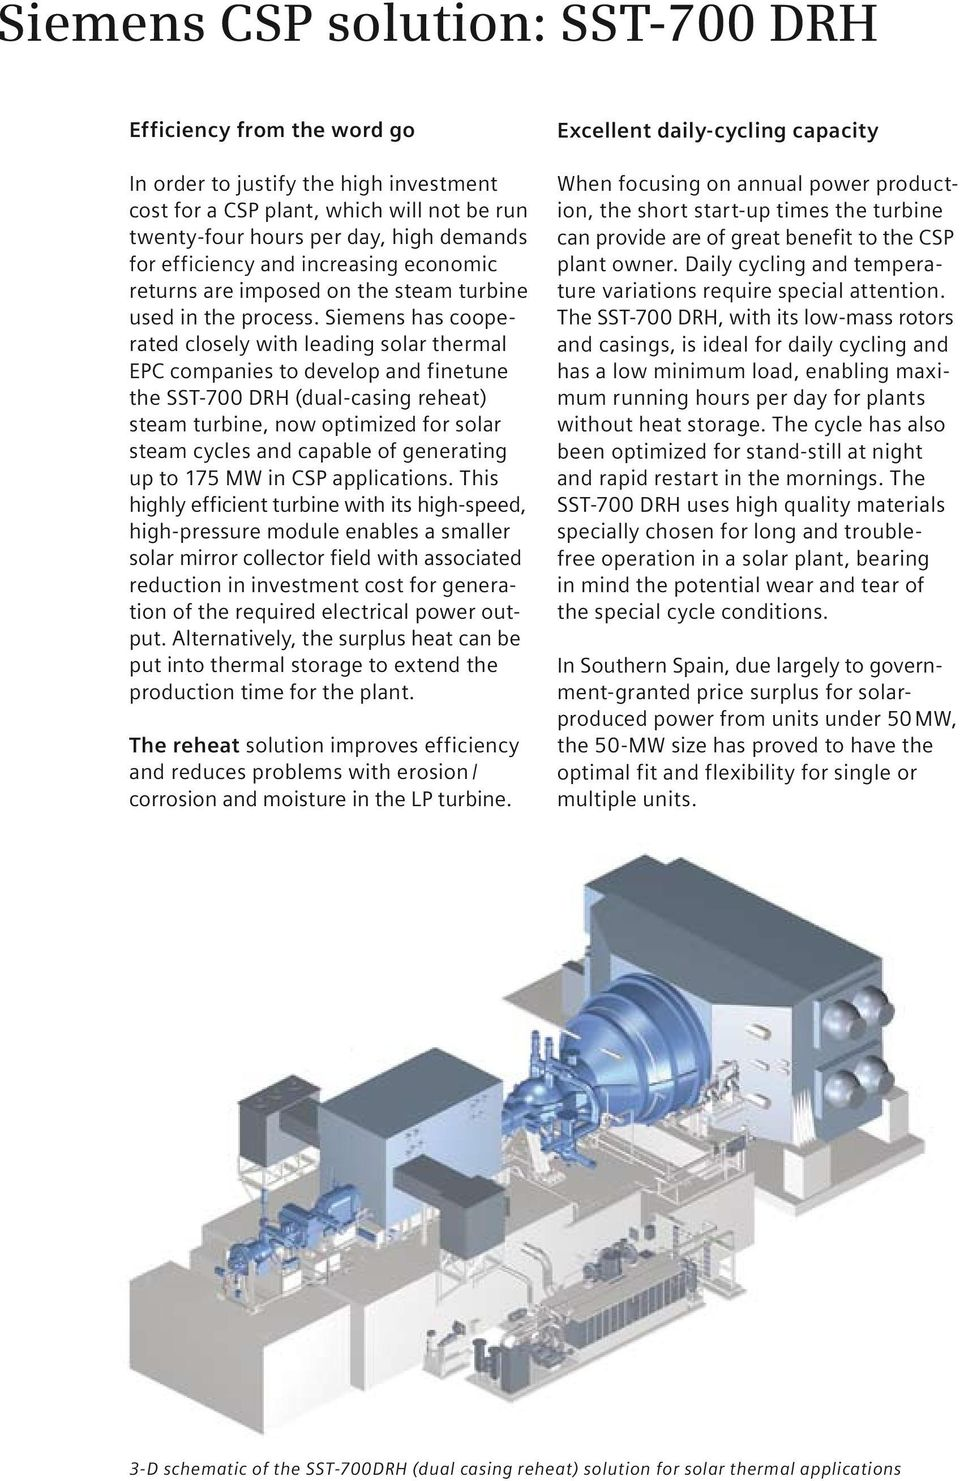 Siemens has cooperated closely with leading solar thermal EPC companies to develop and finetune the SST-700 DRH (dual-casing reheat) steam turbine, now optimized for solar steam cycles and capable of